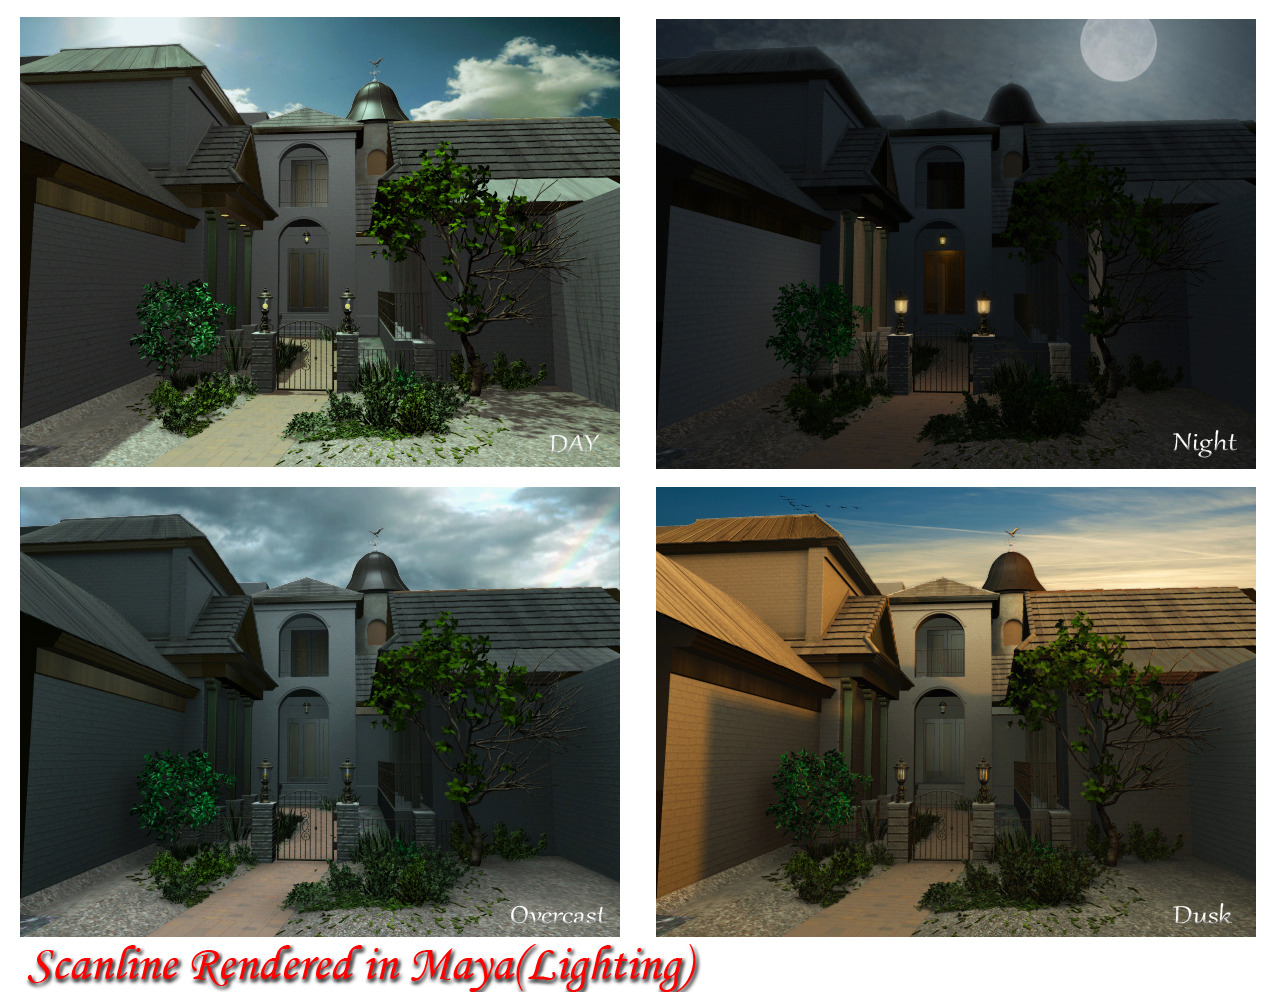 I have lighting this Exterior in Autodesk Maya 2011 using Maya software. U r free to give ur comments in my work. It will be totally my pleasure that u like my works.